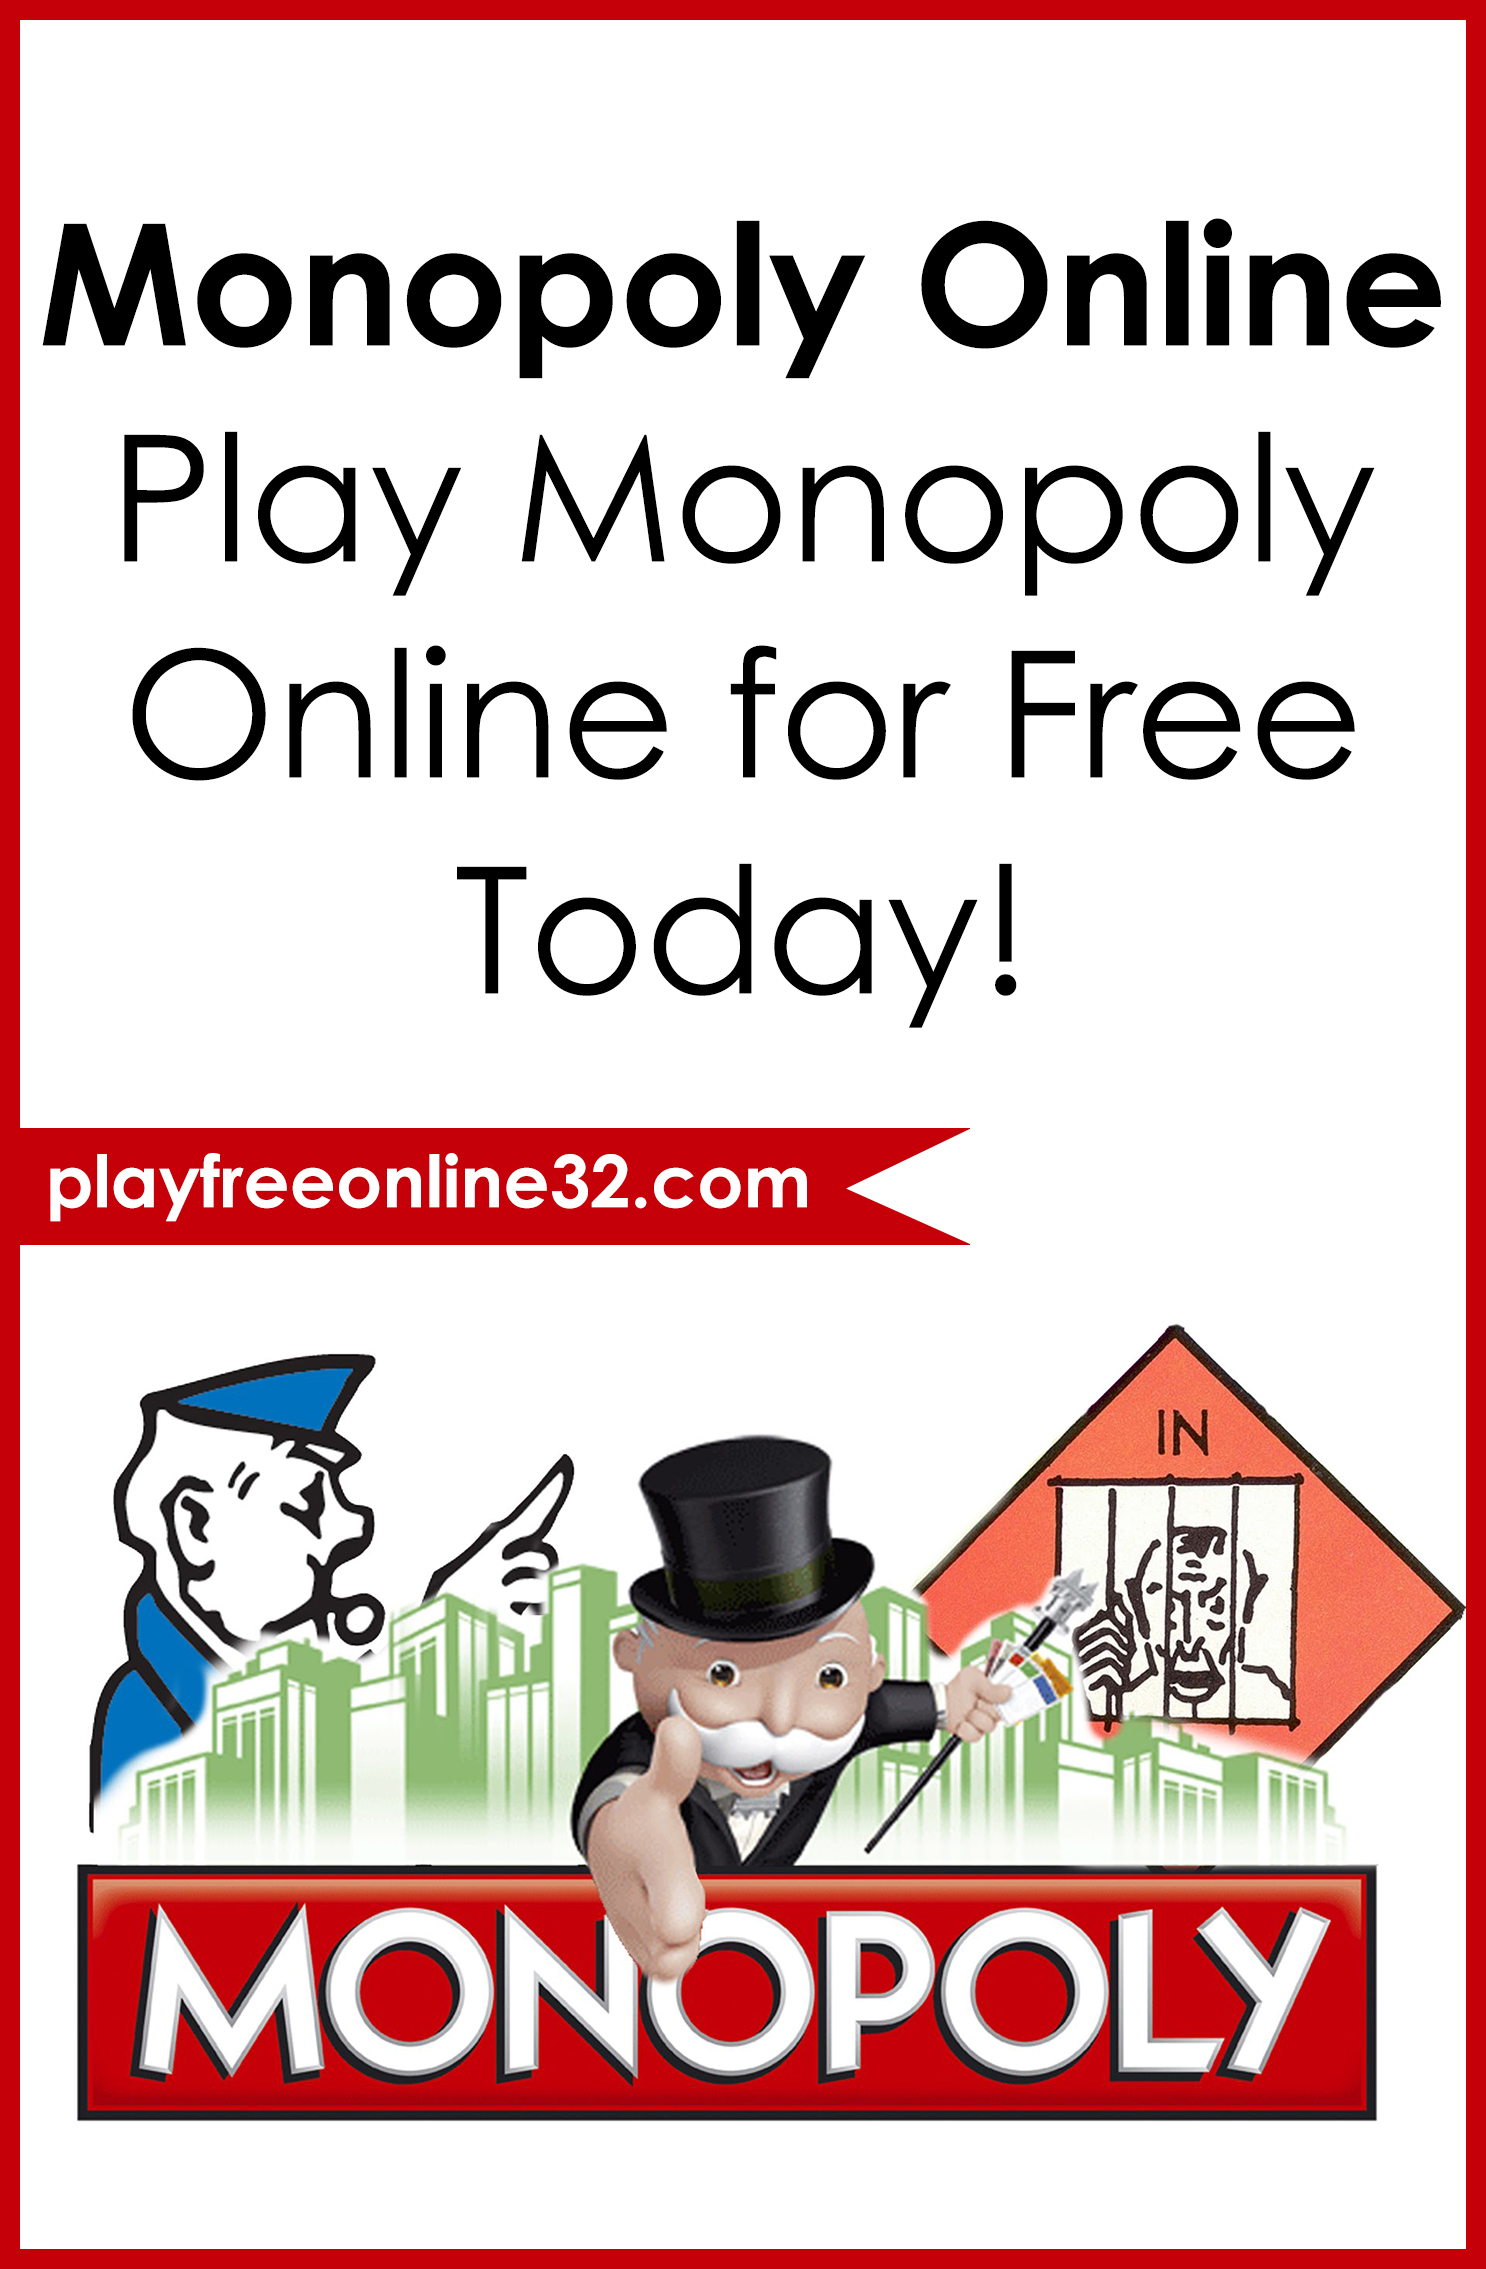 Monopoly Online • Play Monopoly Online for Free Today!